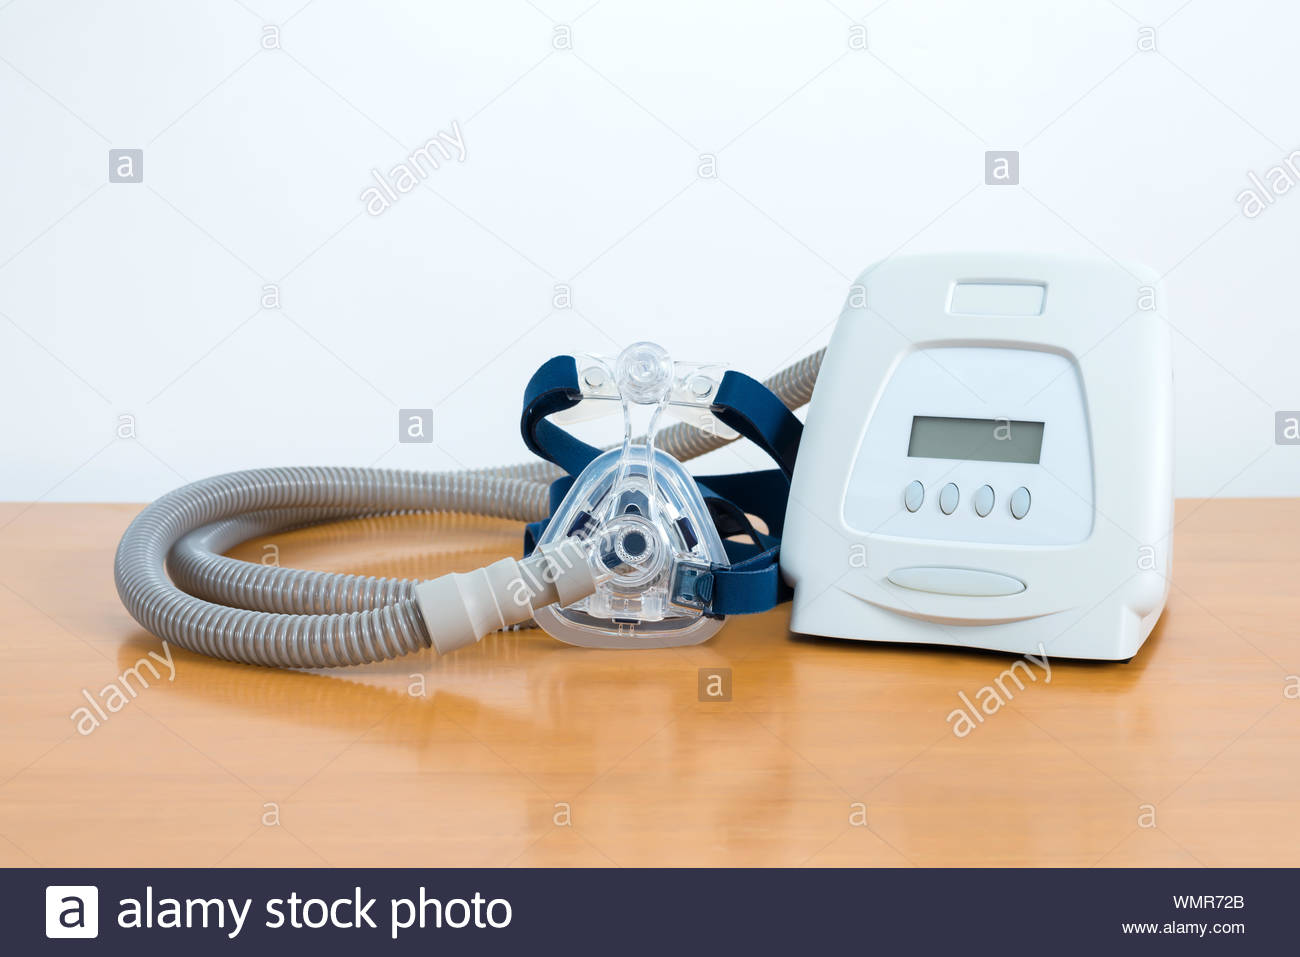 Full components of Cpap system on wooden table white background 1300x957